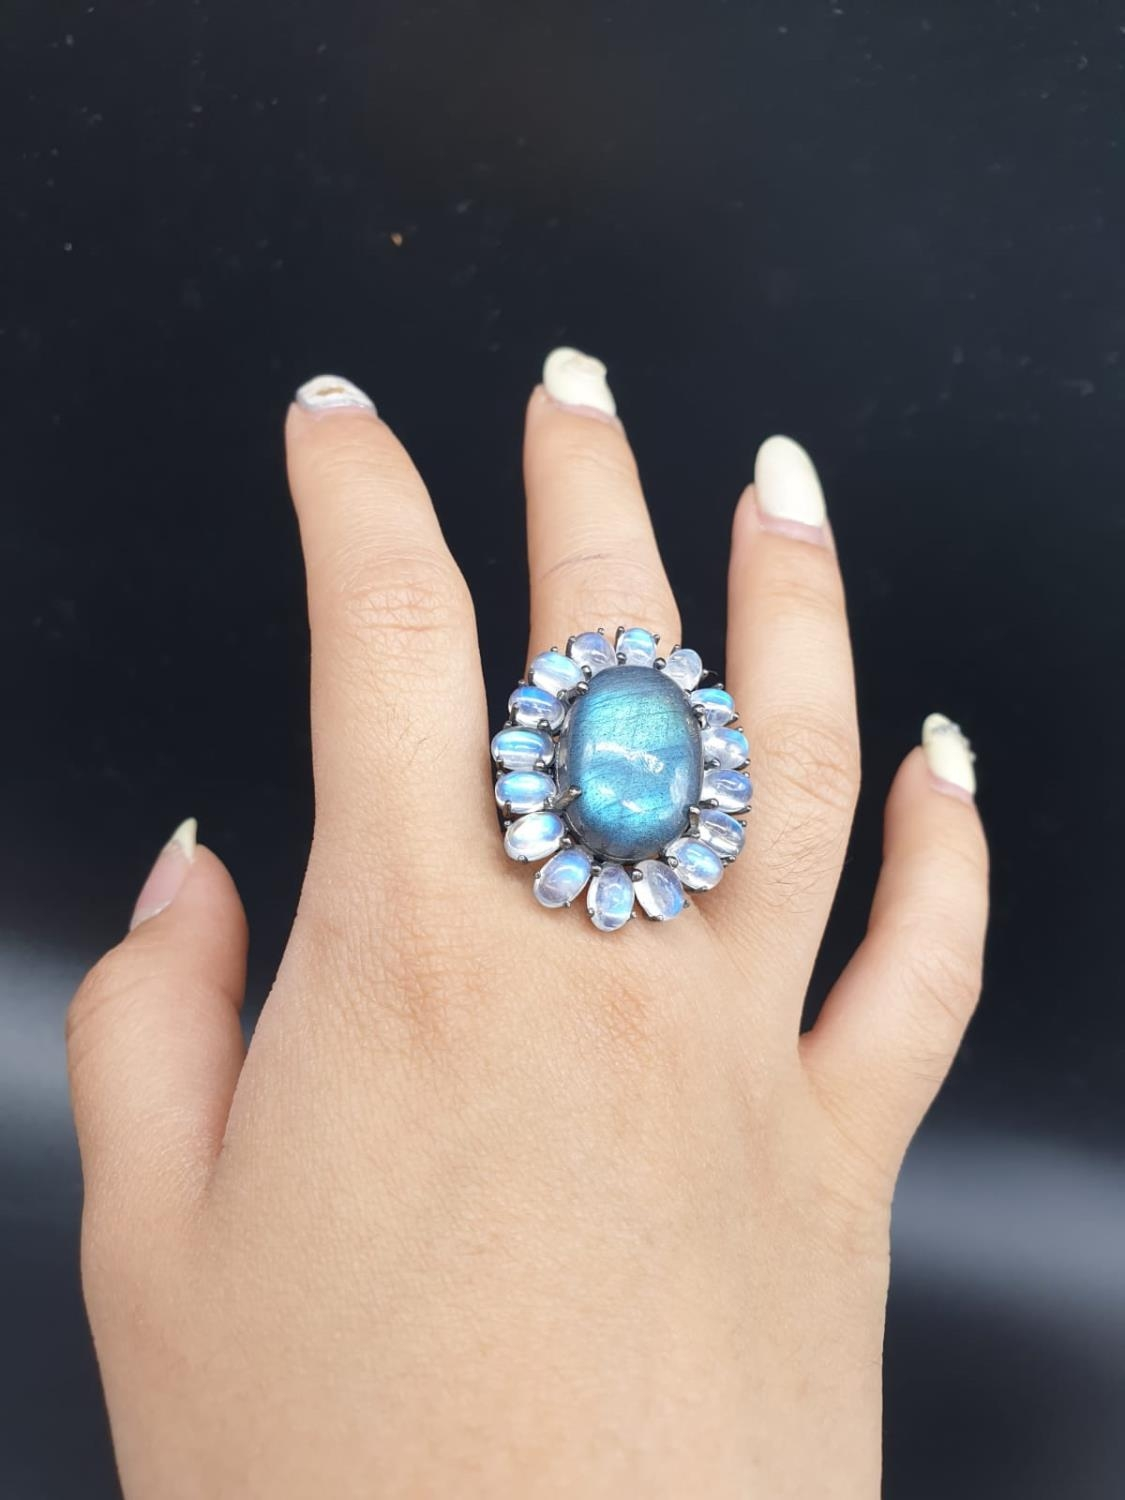 10.50 Ct Moonstones & 14.25 Ct Labradorite set within a blackened silver ring, weight 11.62g and - Image 7 of 7